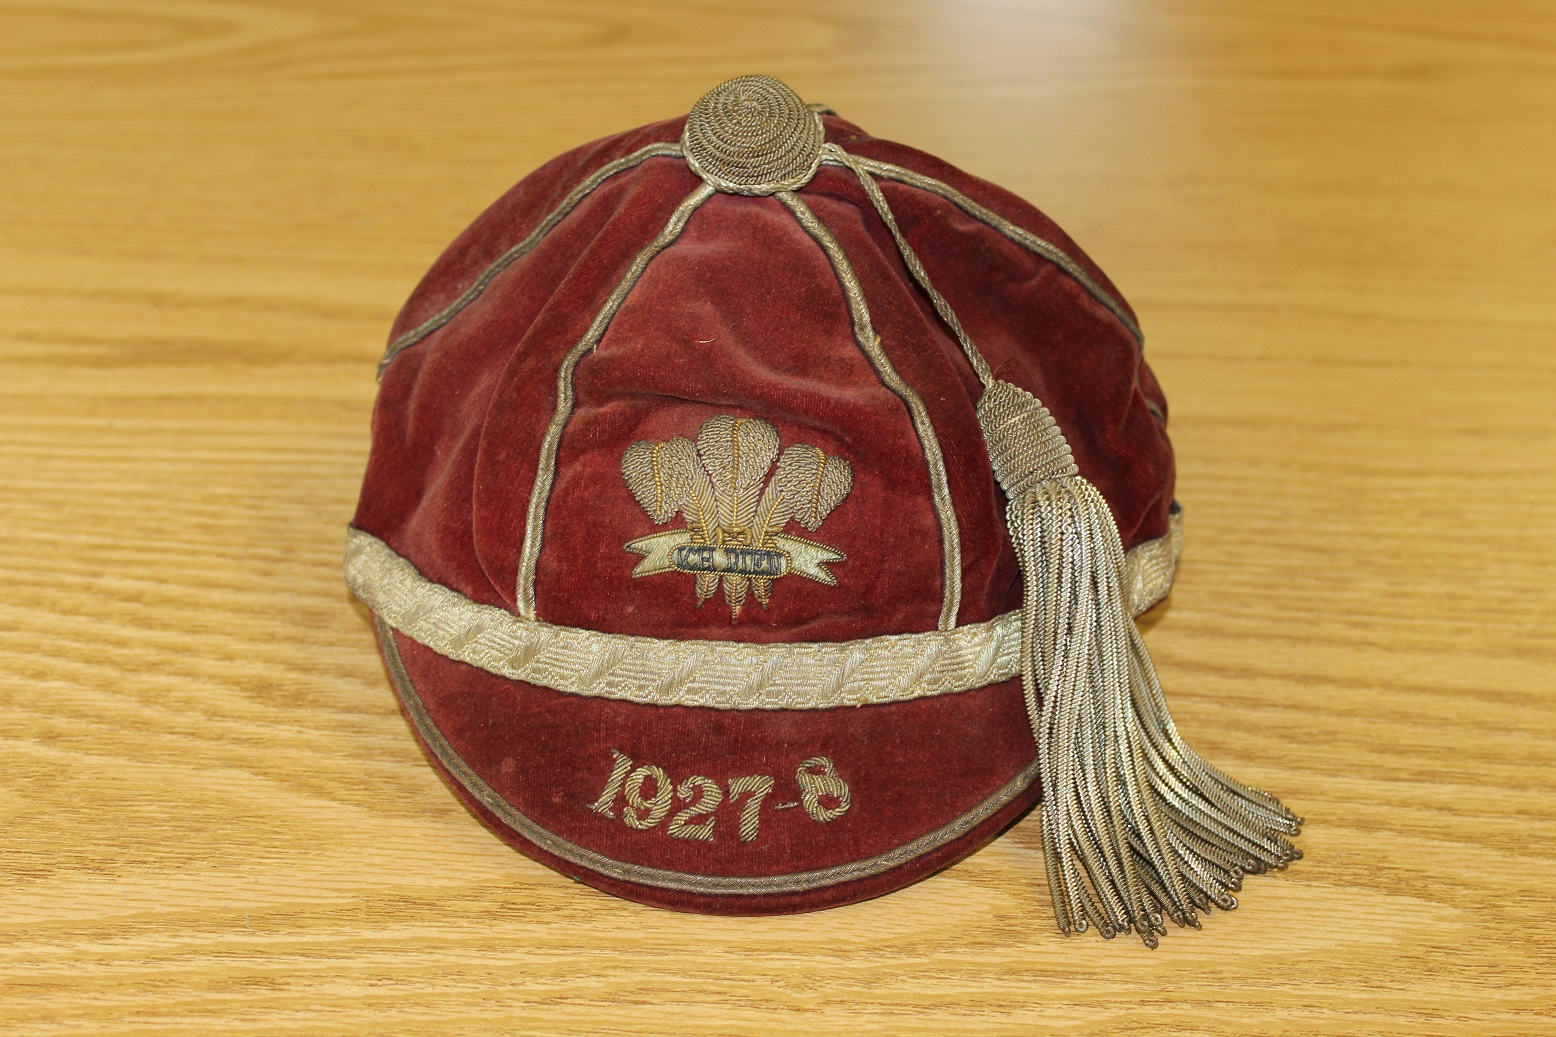 Cecil Pritchard - Welsh Cap - Rugby Memorabilia Society